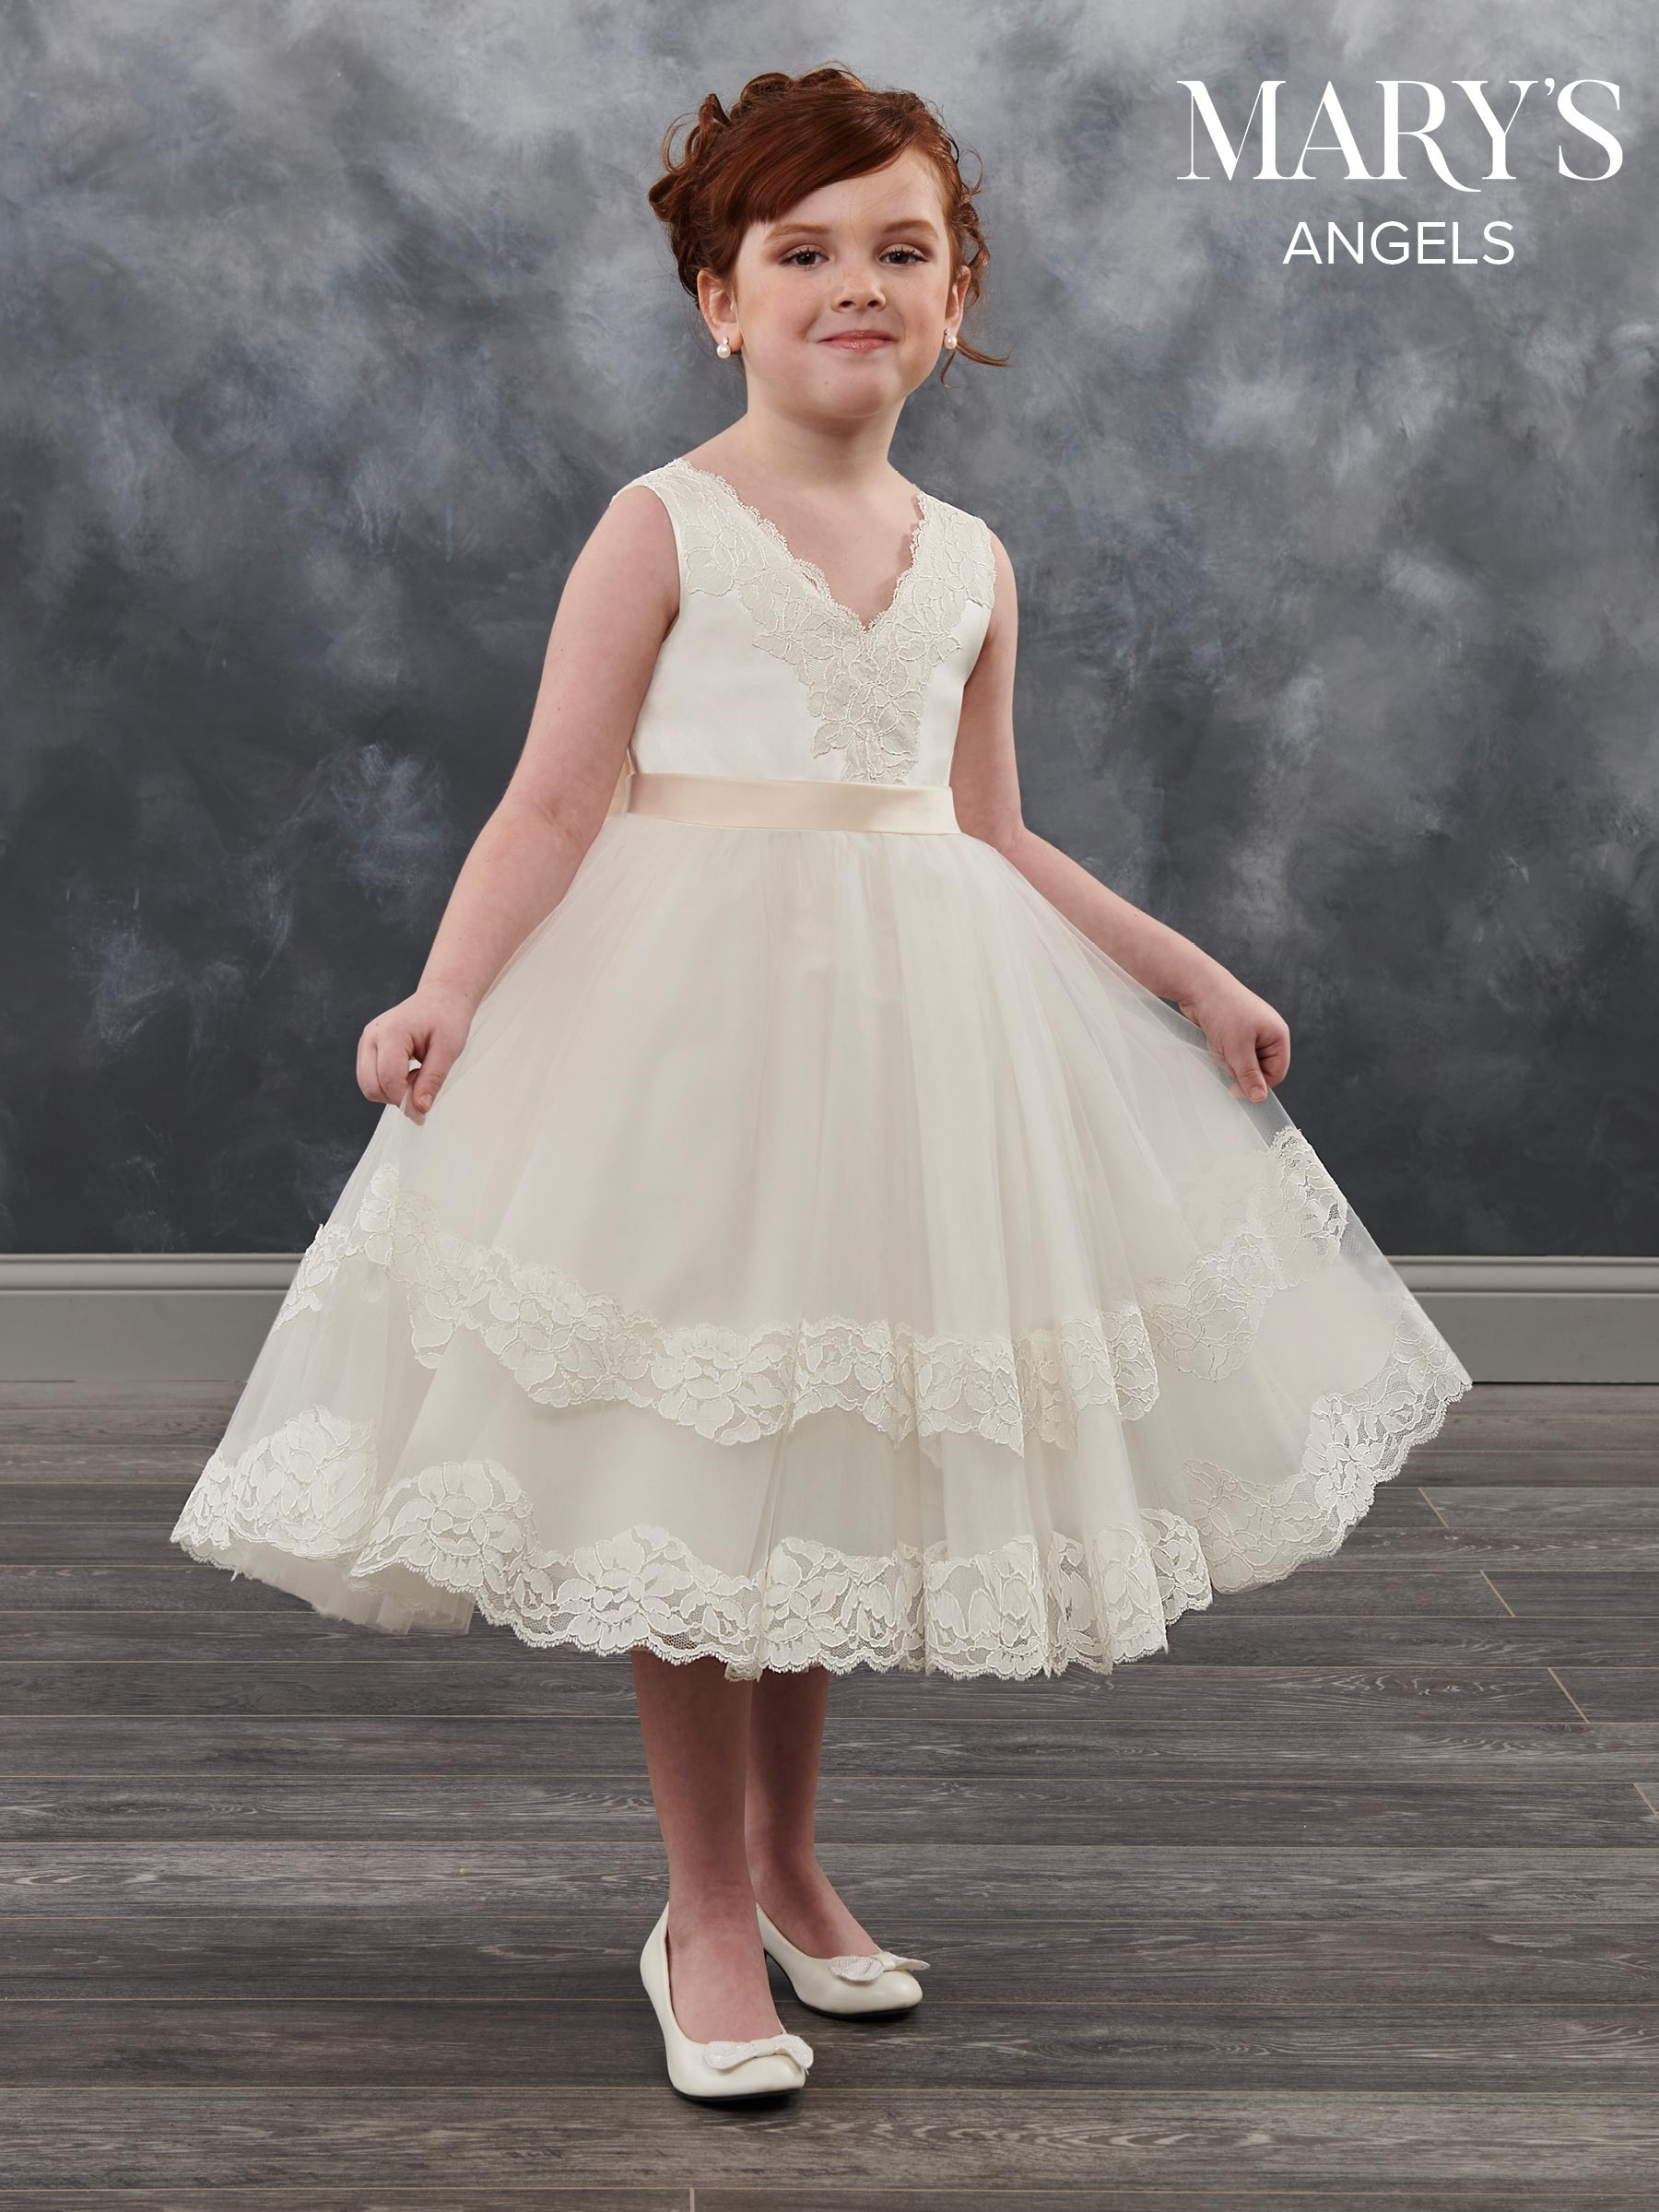 980f6f240 Angel Flower Girl Dresses | Style - MB9018 in Ivory/Champagne, Ivory ...